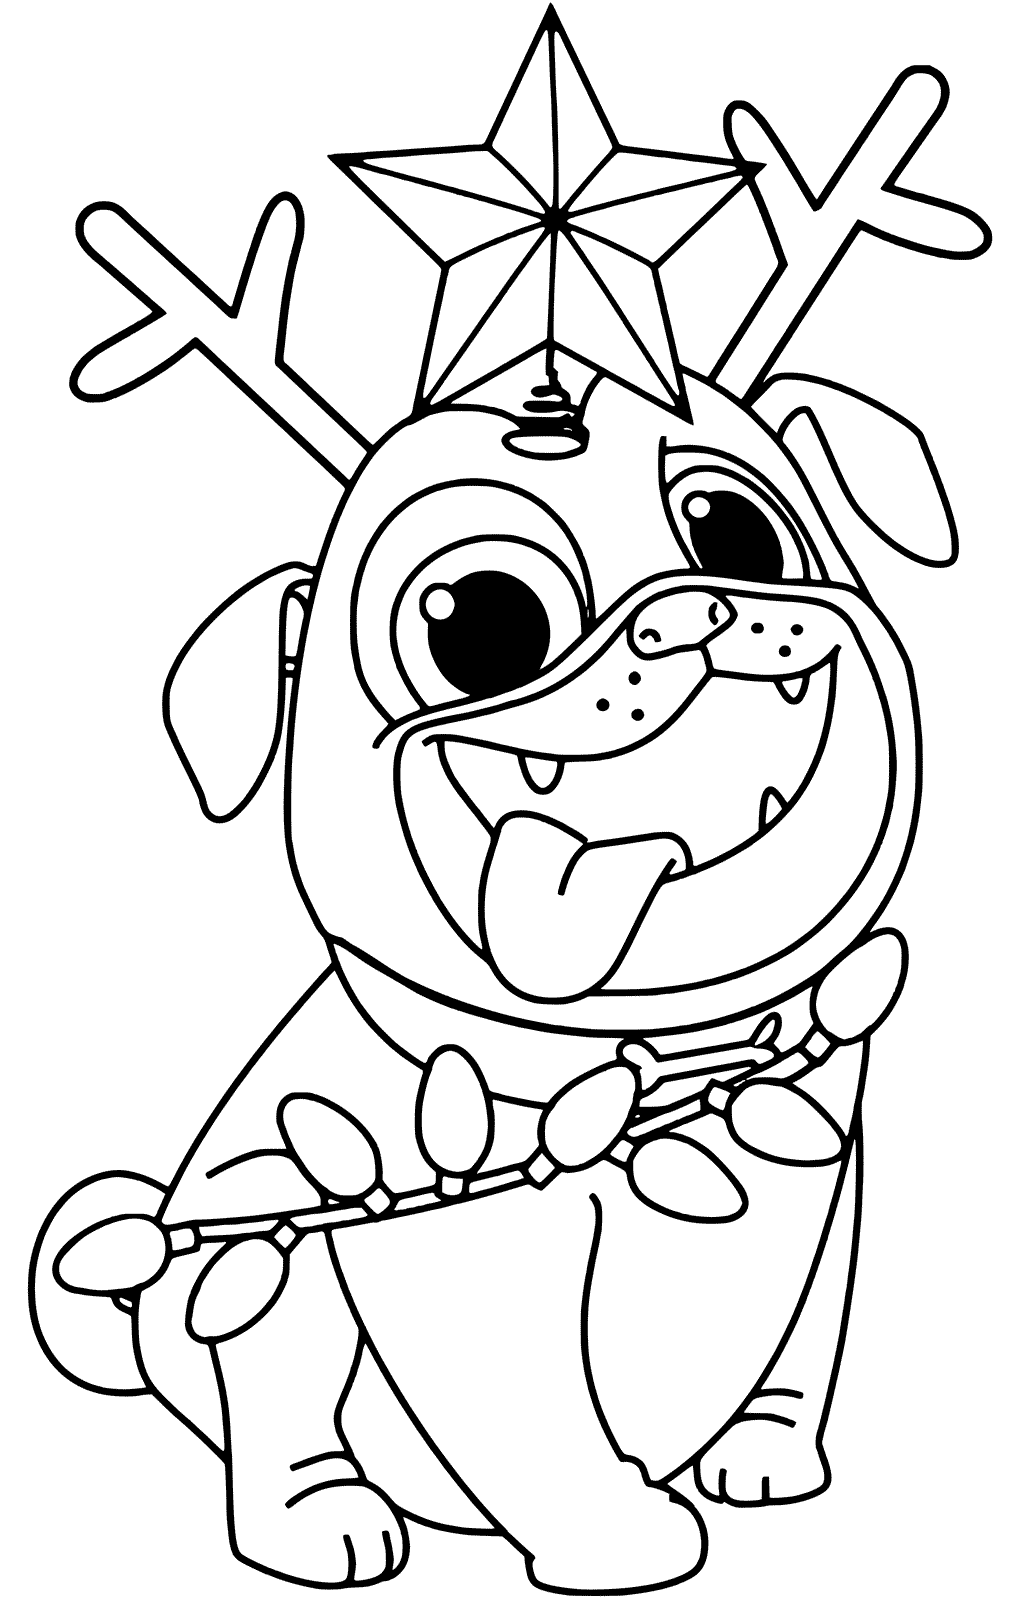 dog colouring pages free pictures of puppies to print download free clip art dog colouring pages